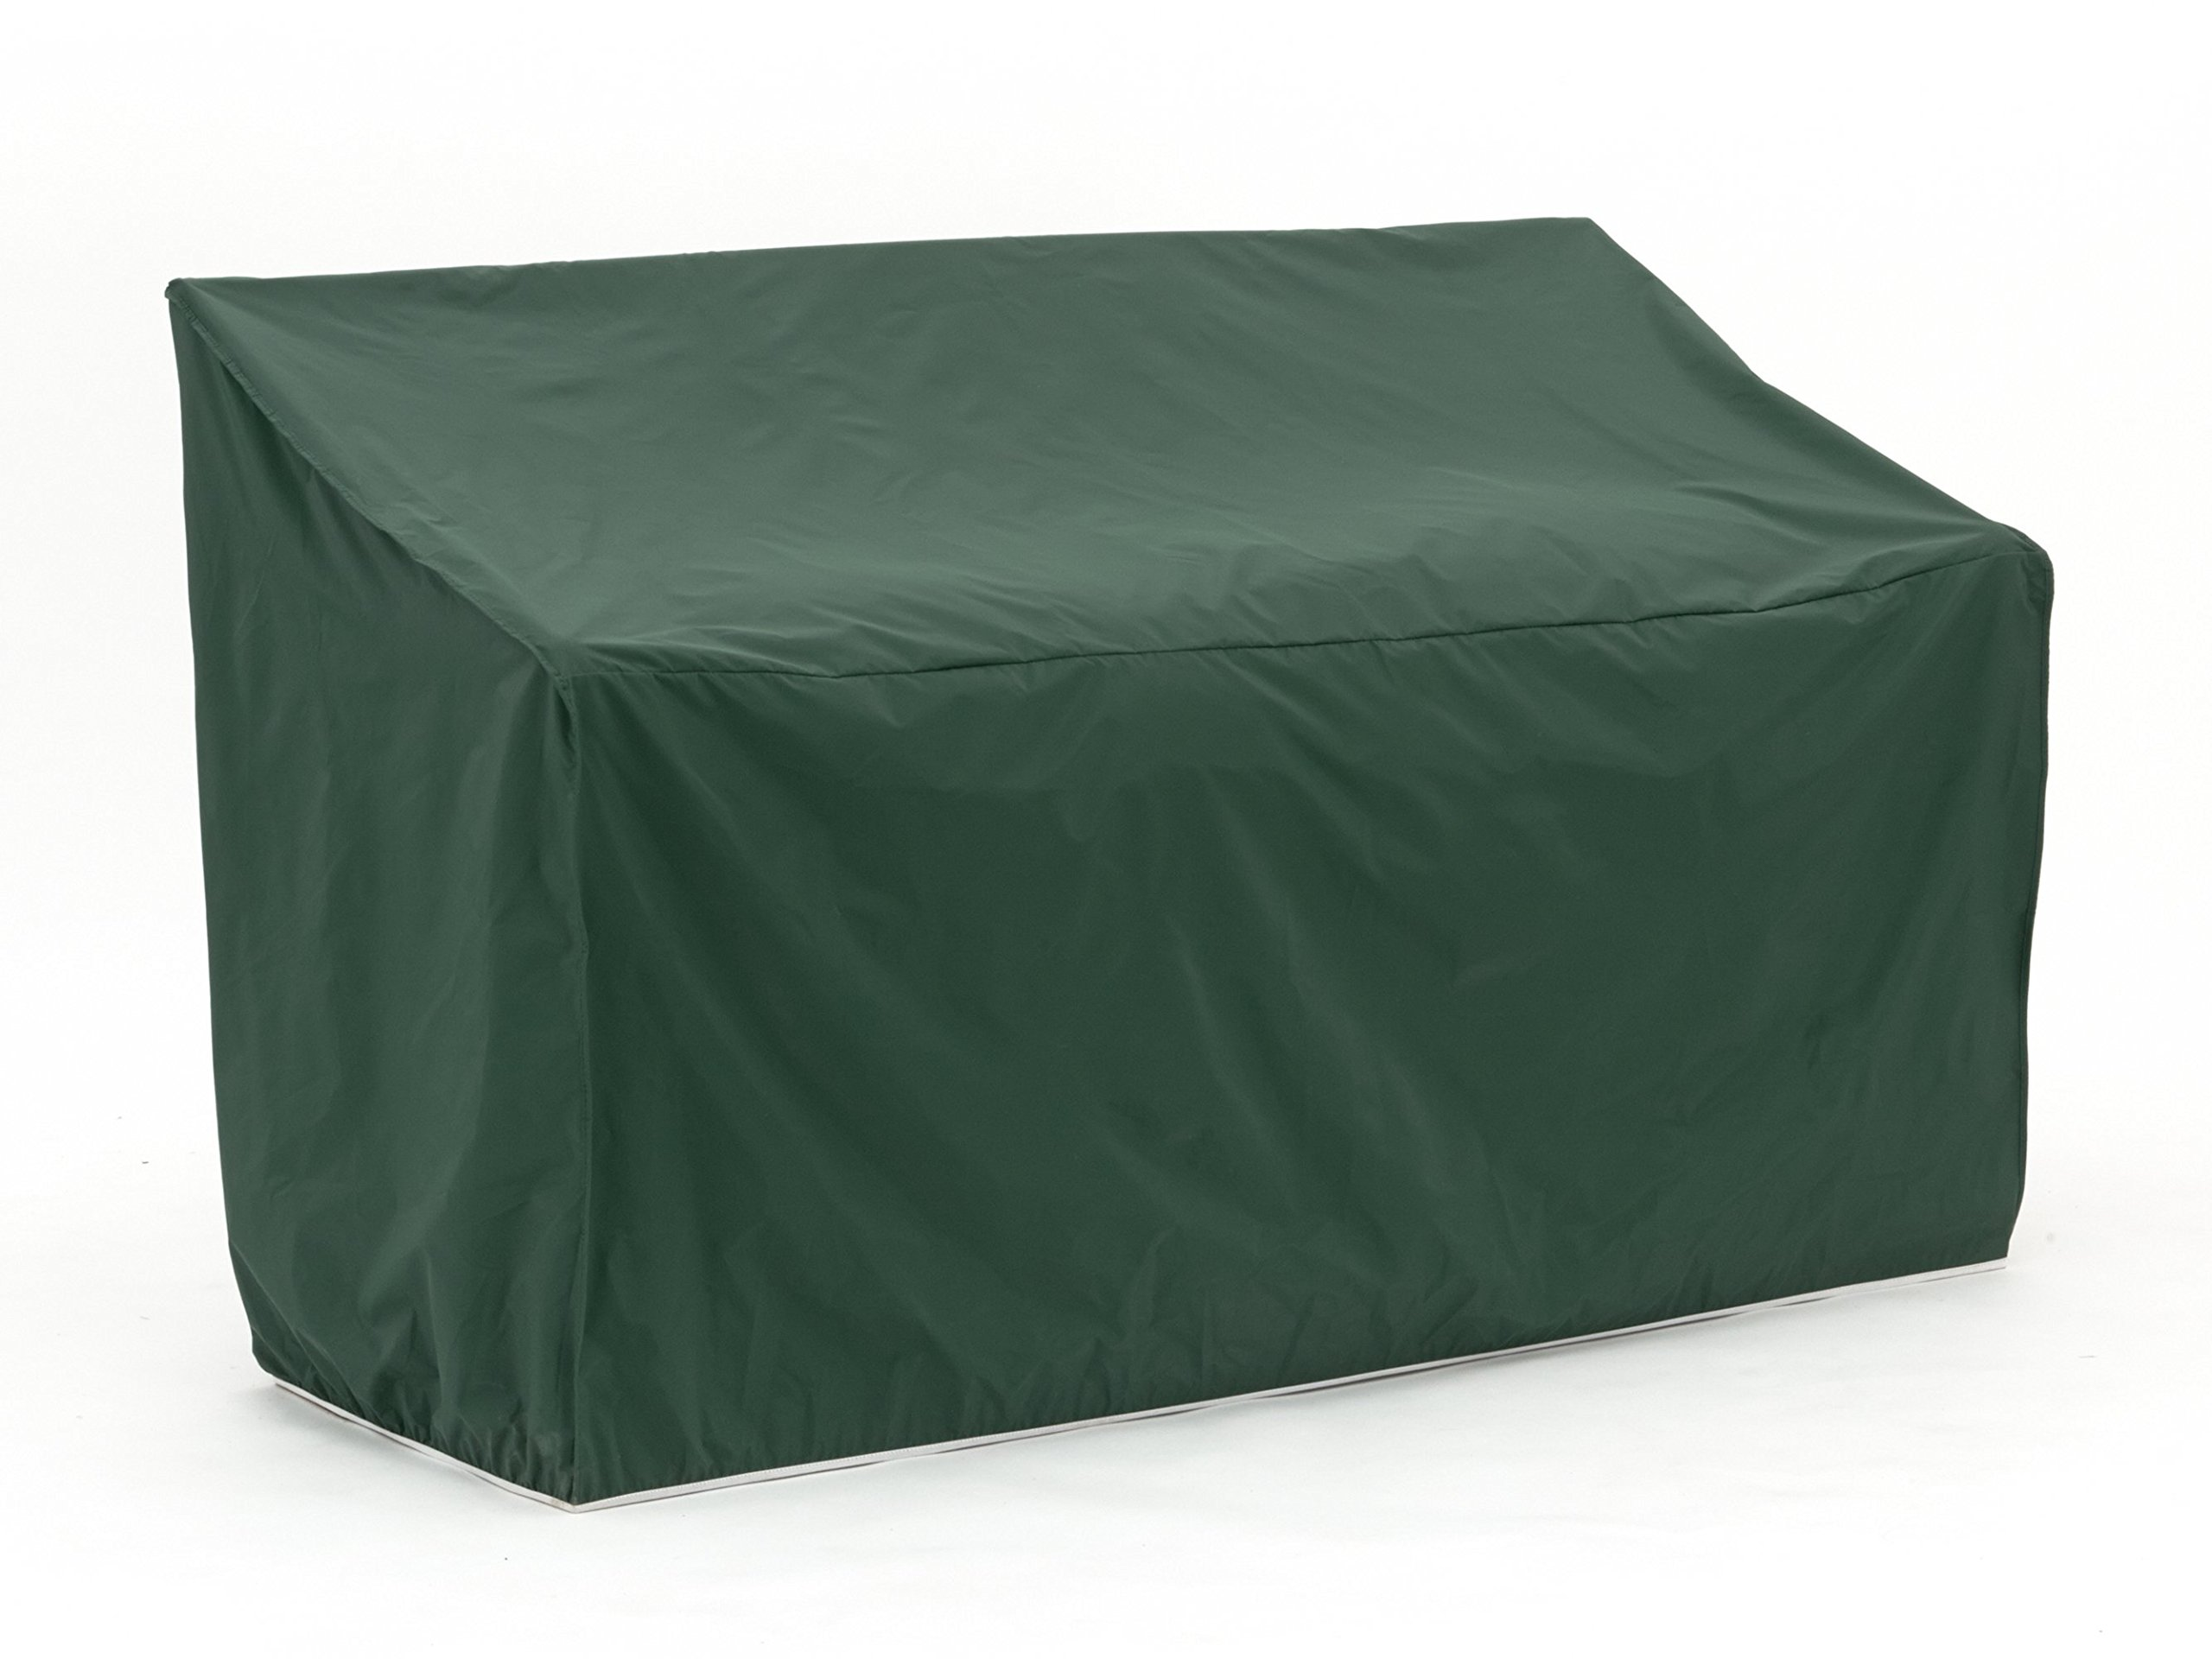 Covermates – Outdoor Patio Loveseat Cover – 64W x 34D x 30H – Classic Collection – 2 YR Warranty – Year Around Protection - Green